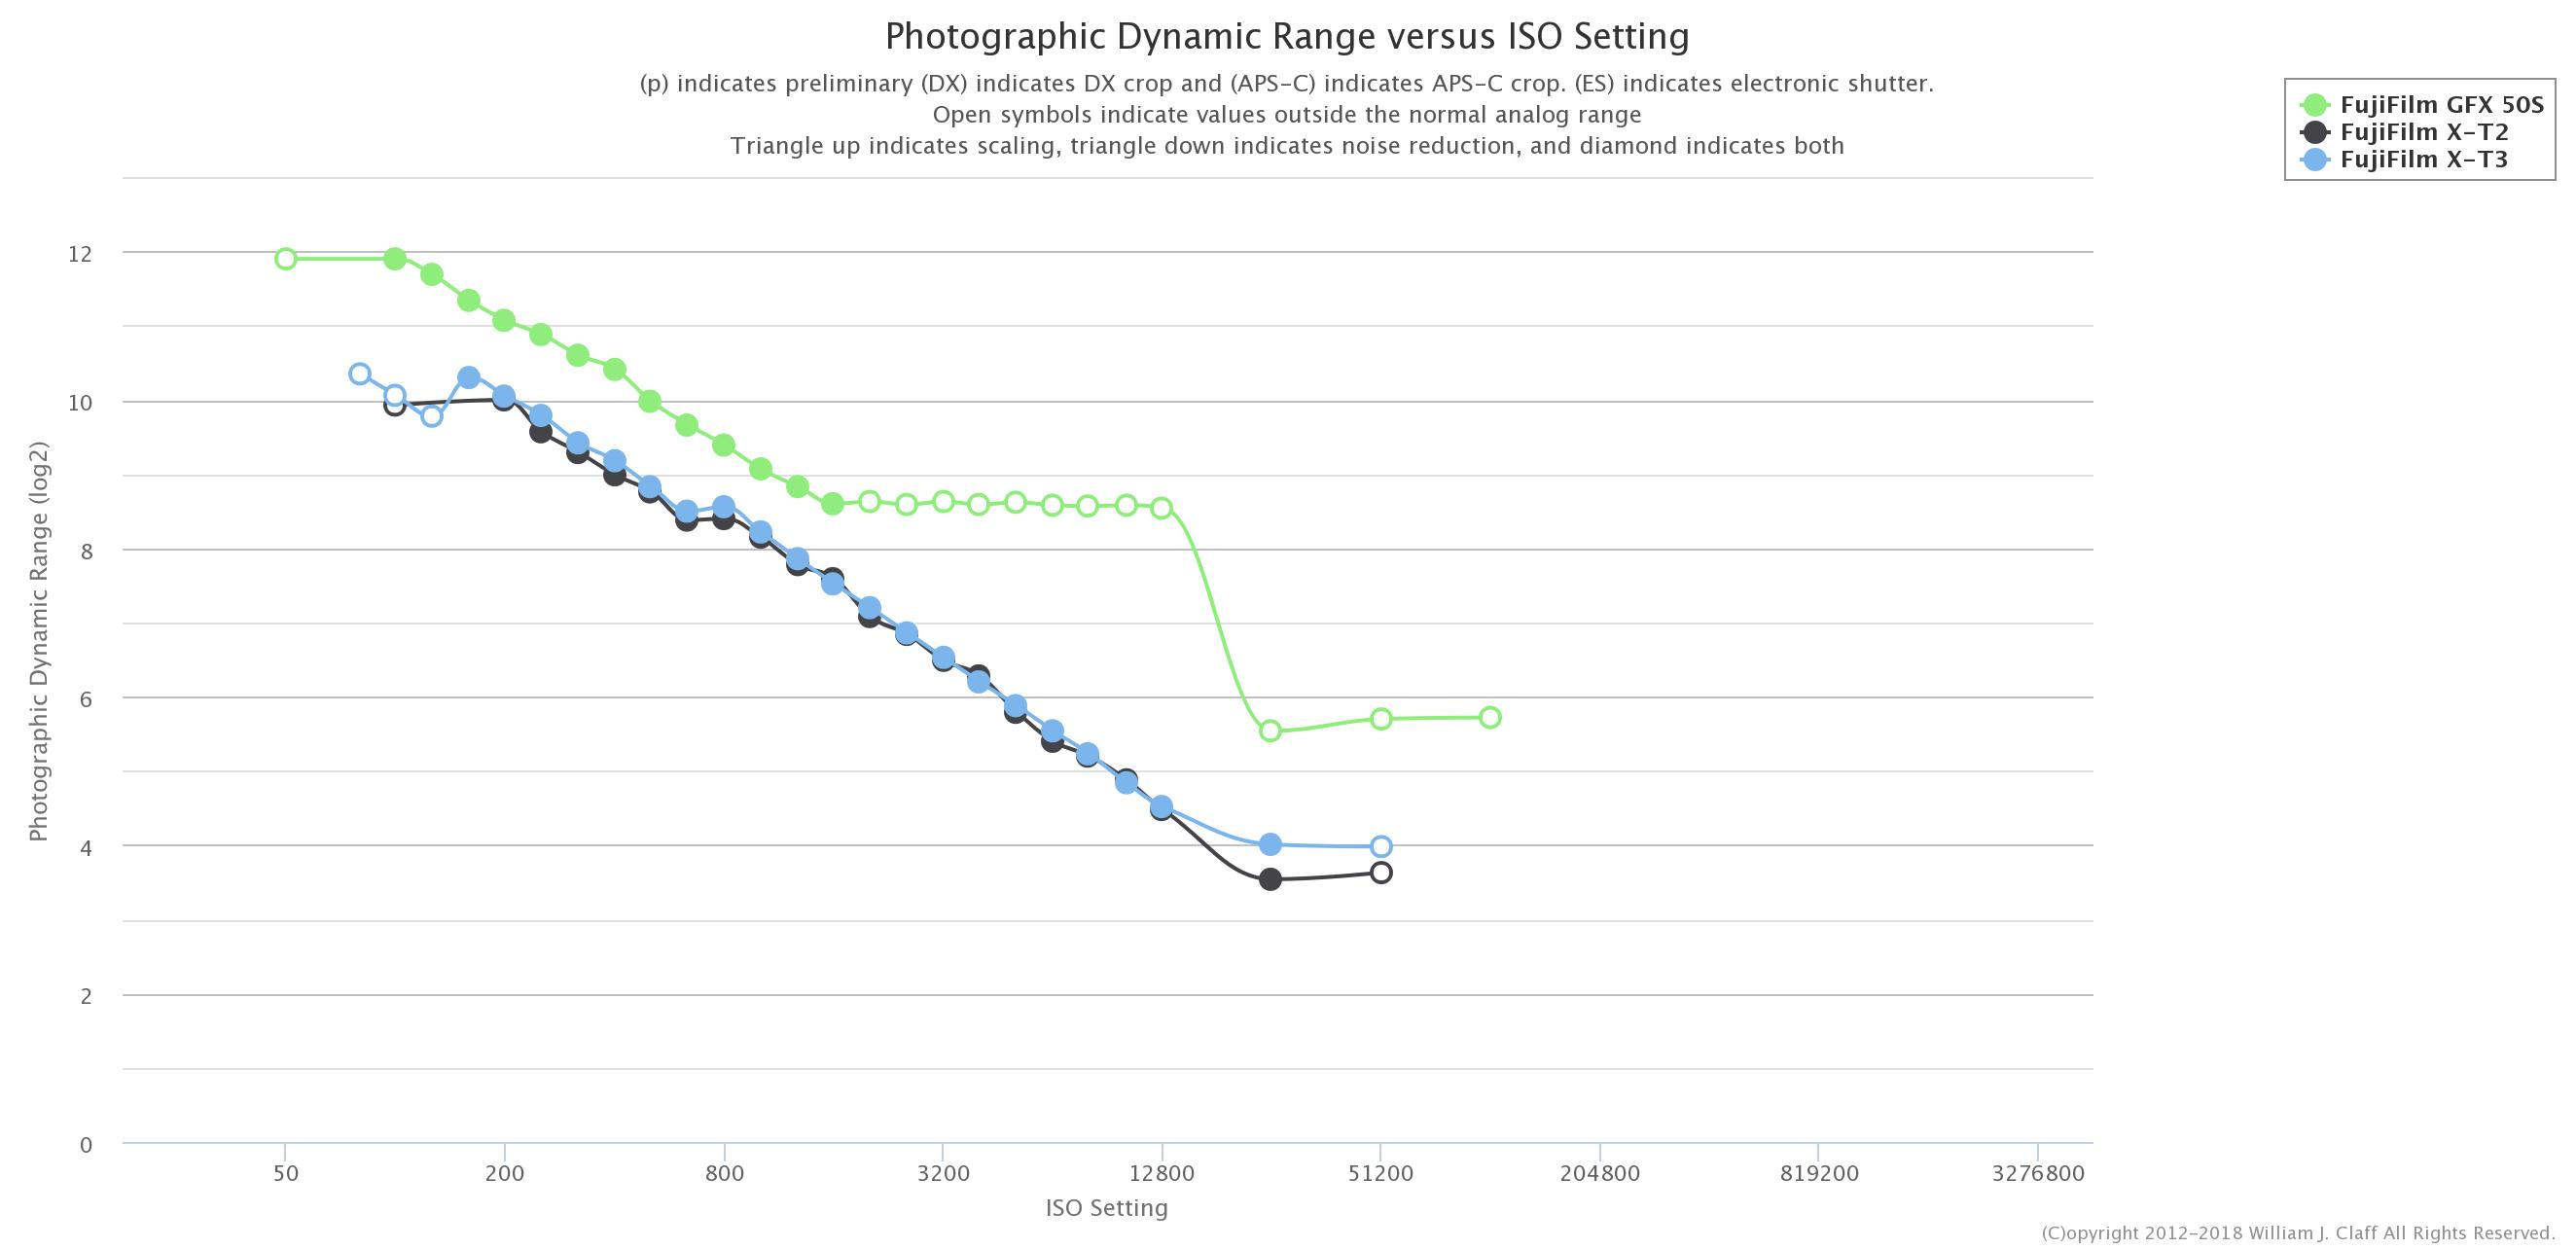 Photons to Photos: Fujifilm X-T3 Has Better Dynamic Range